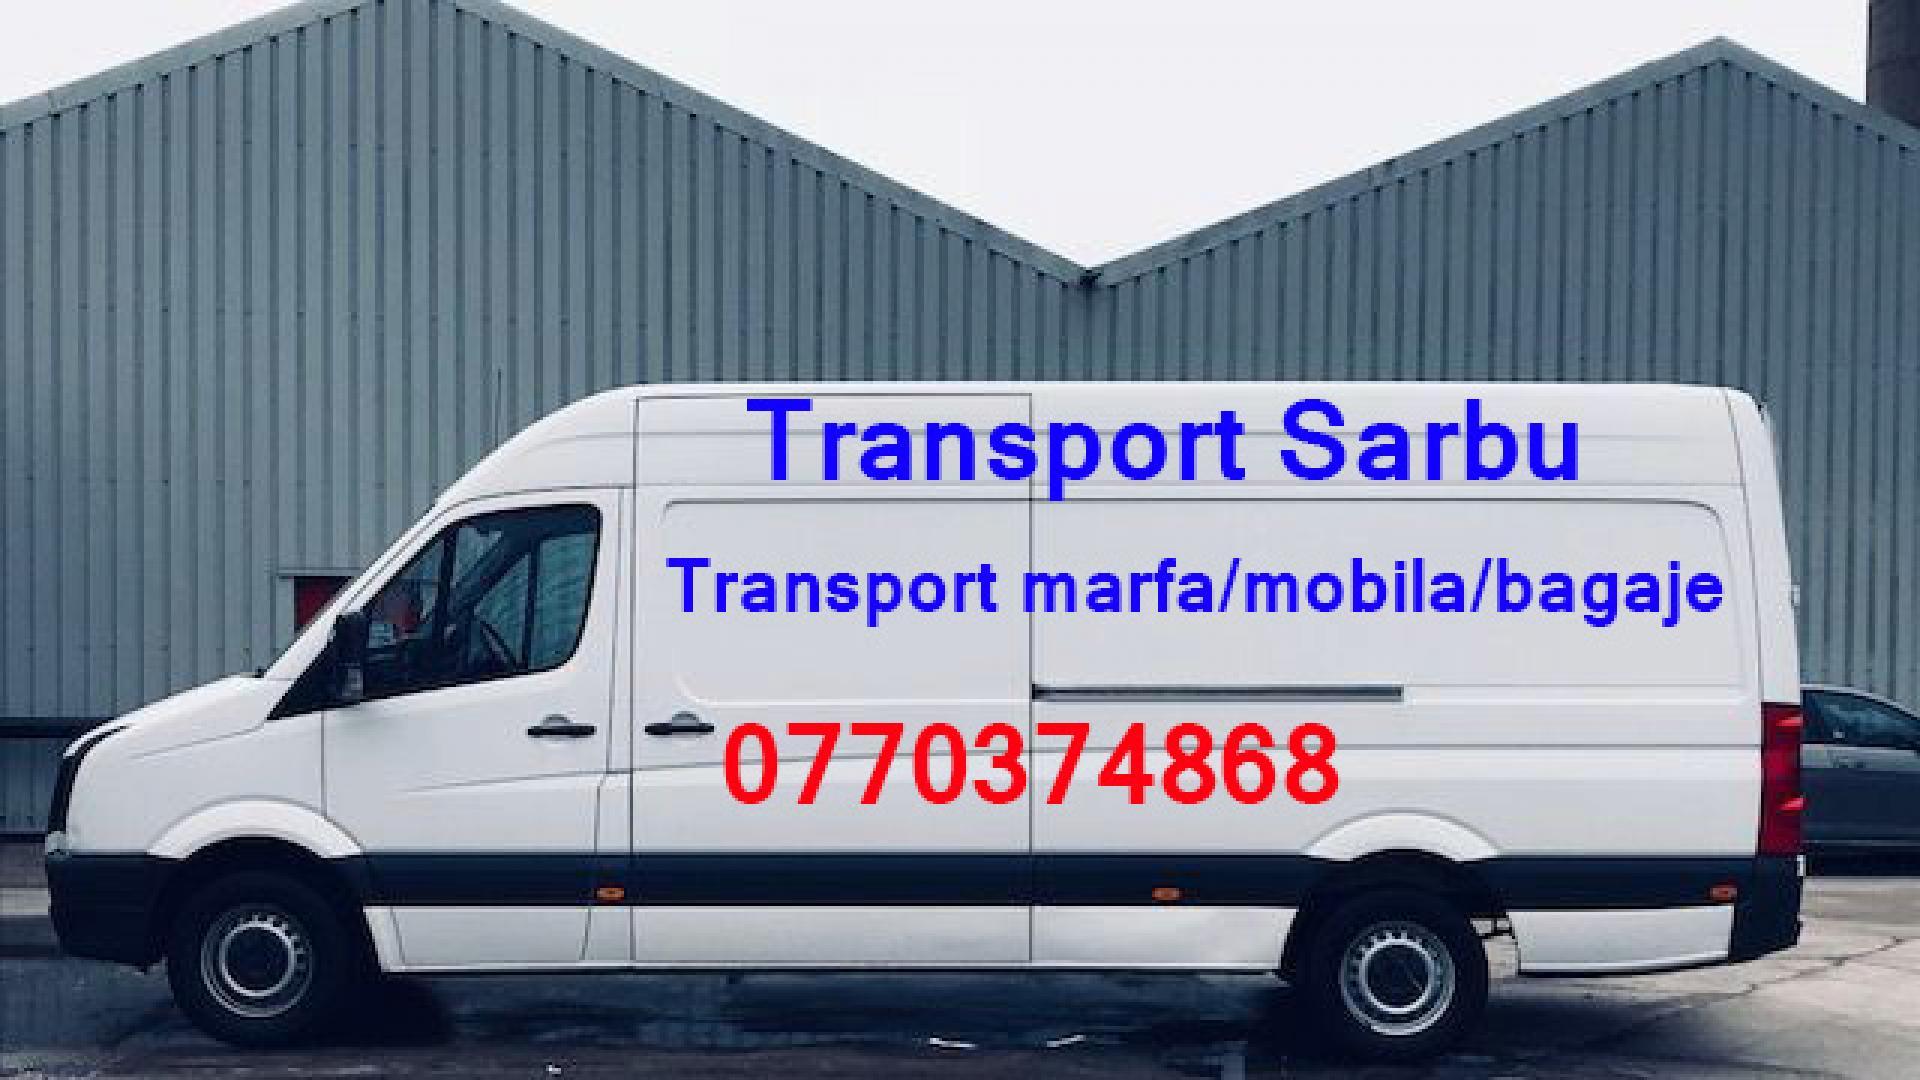 Transport Sarbu